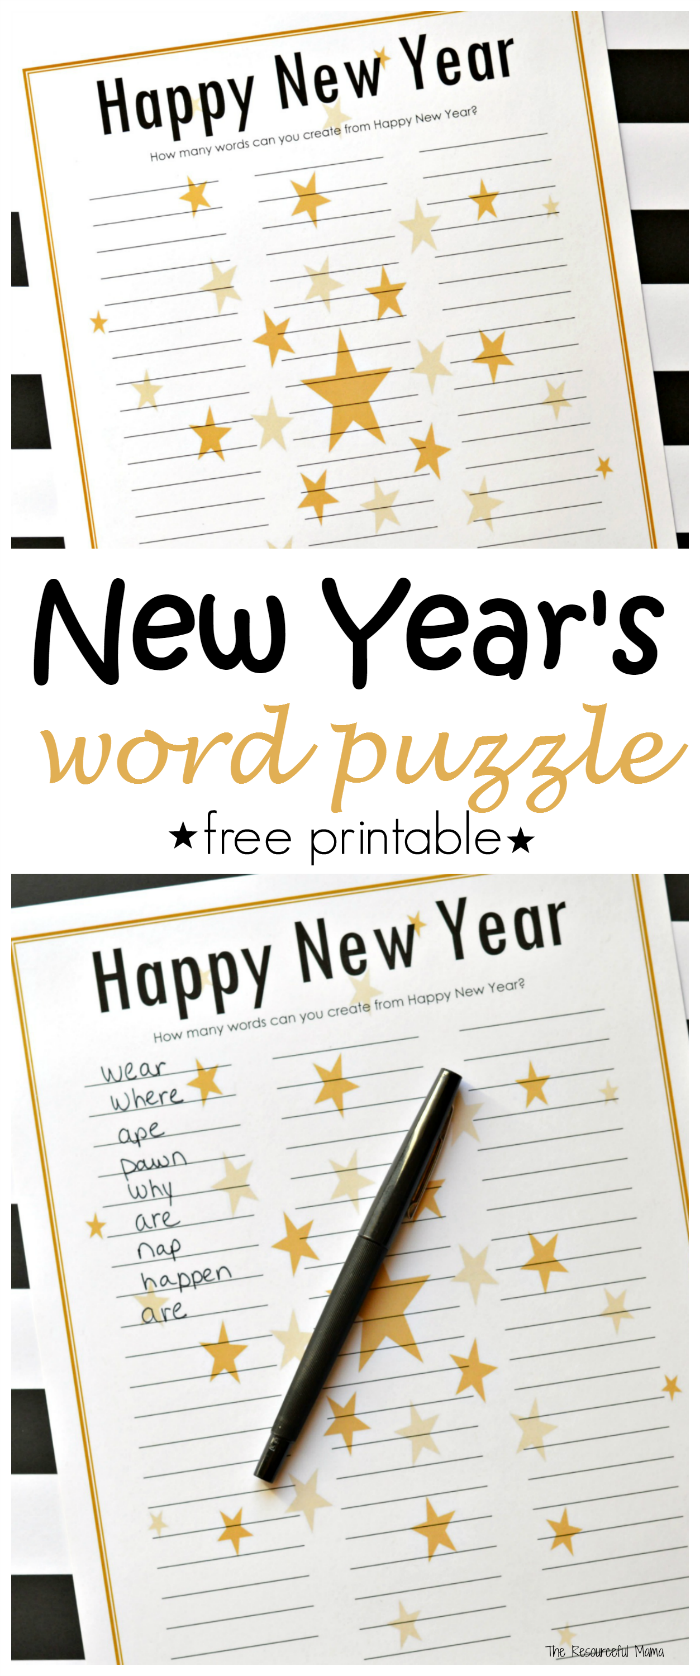 45a00b9068b7 This Happy New Year word puzzle is a fun and entertaining New Year s Eve  activity for kids and adults that can easily be turned into a competition  or game.